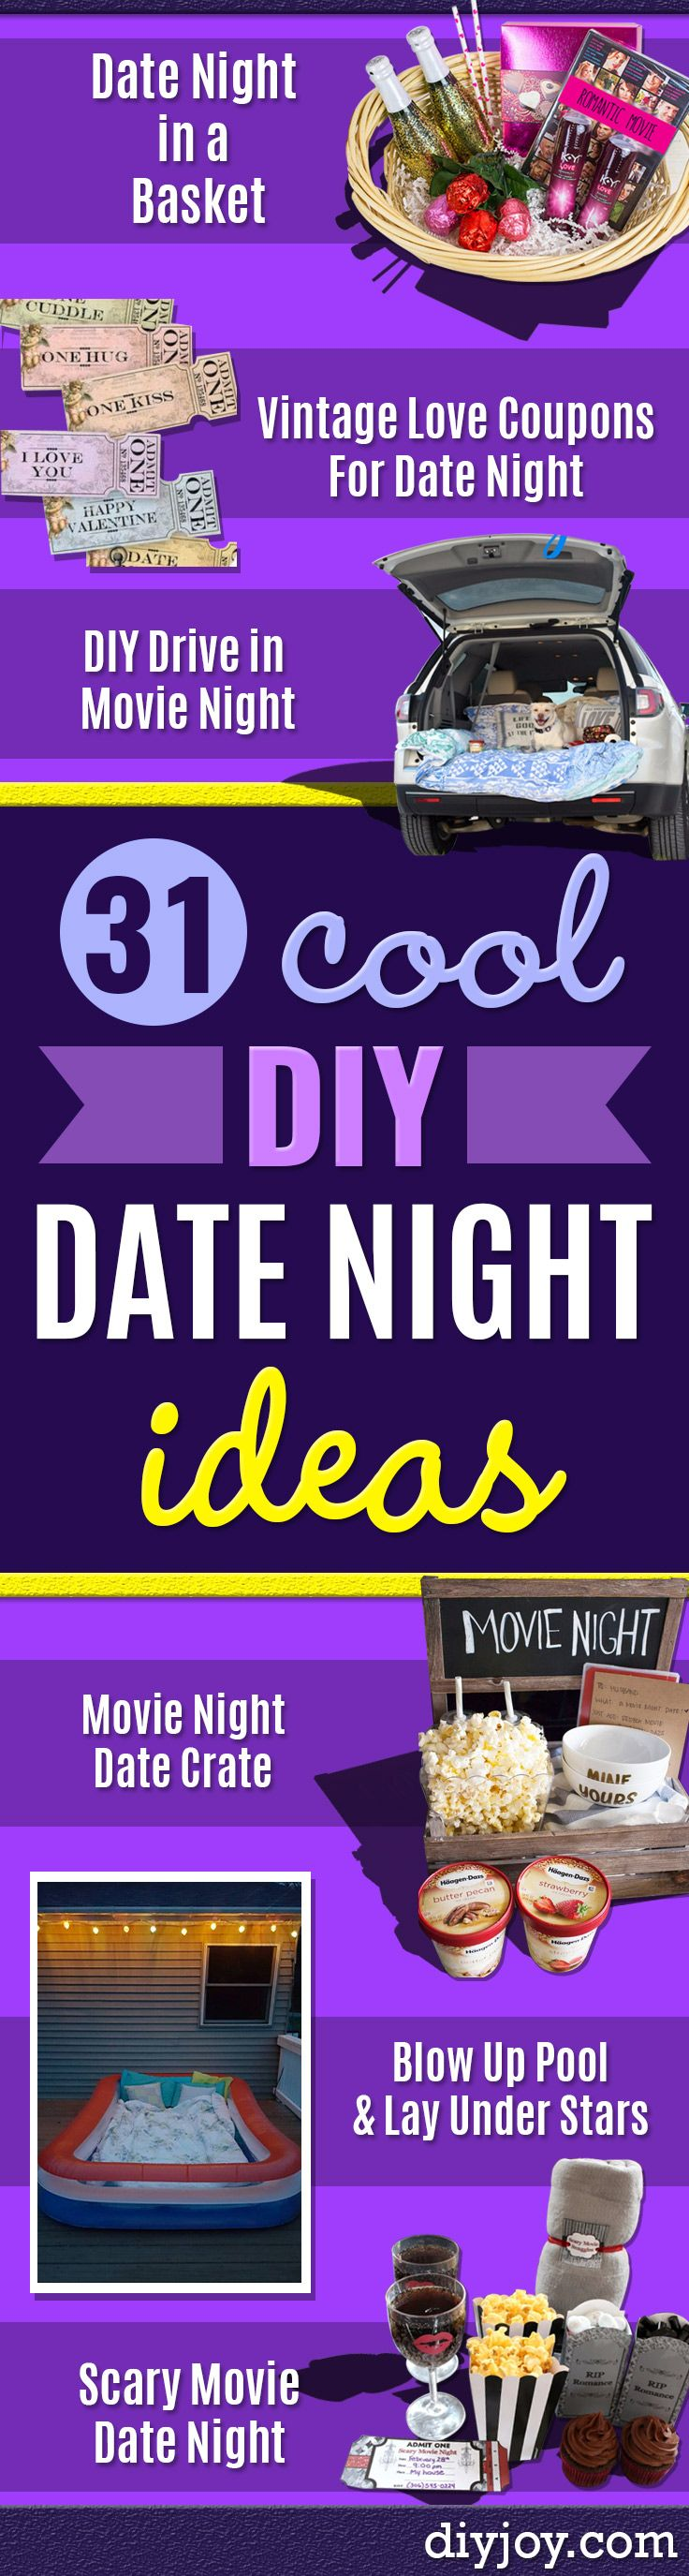 123 best diy gift images on pinterest gift ideas creative ideas 31 brilliant date night ideas you can act like you thought of yourself we wont tell solutioingenieria